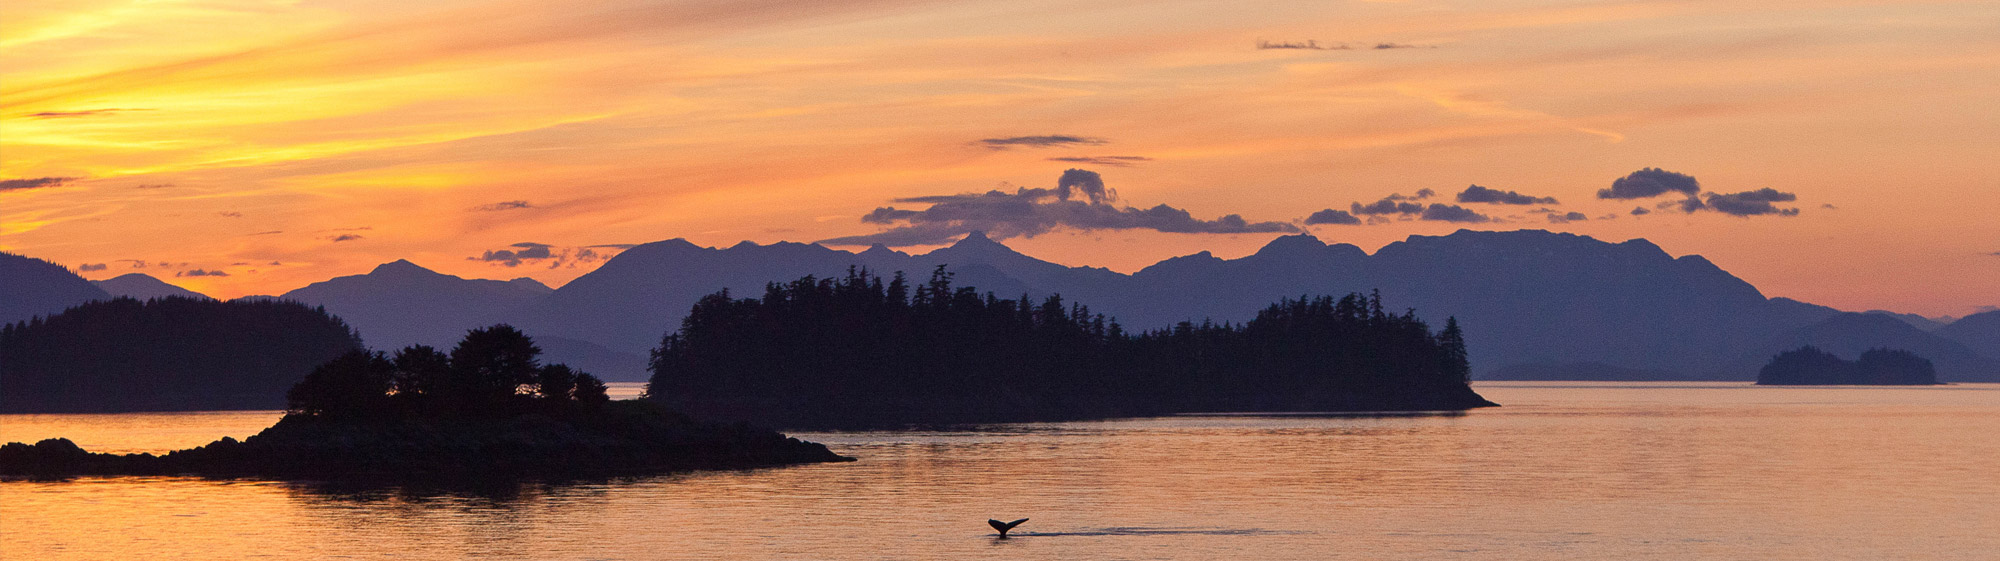 sunset in Alaska with a whale breaching in the foreground